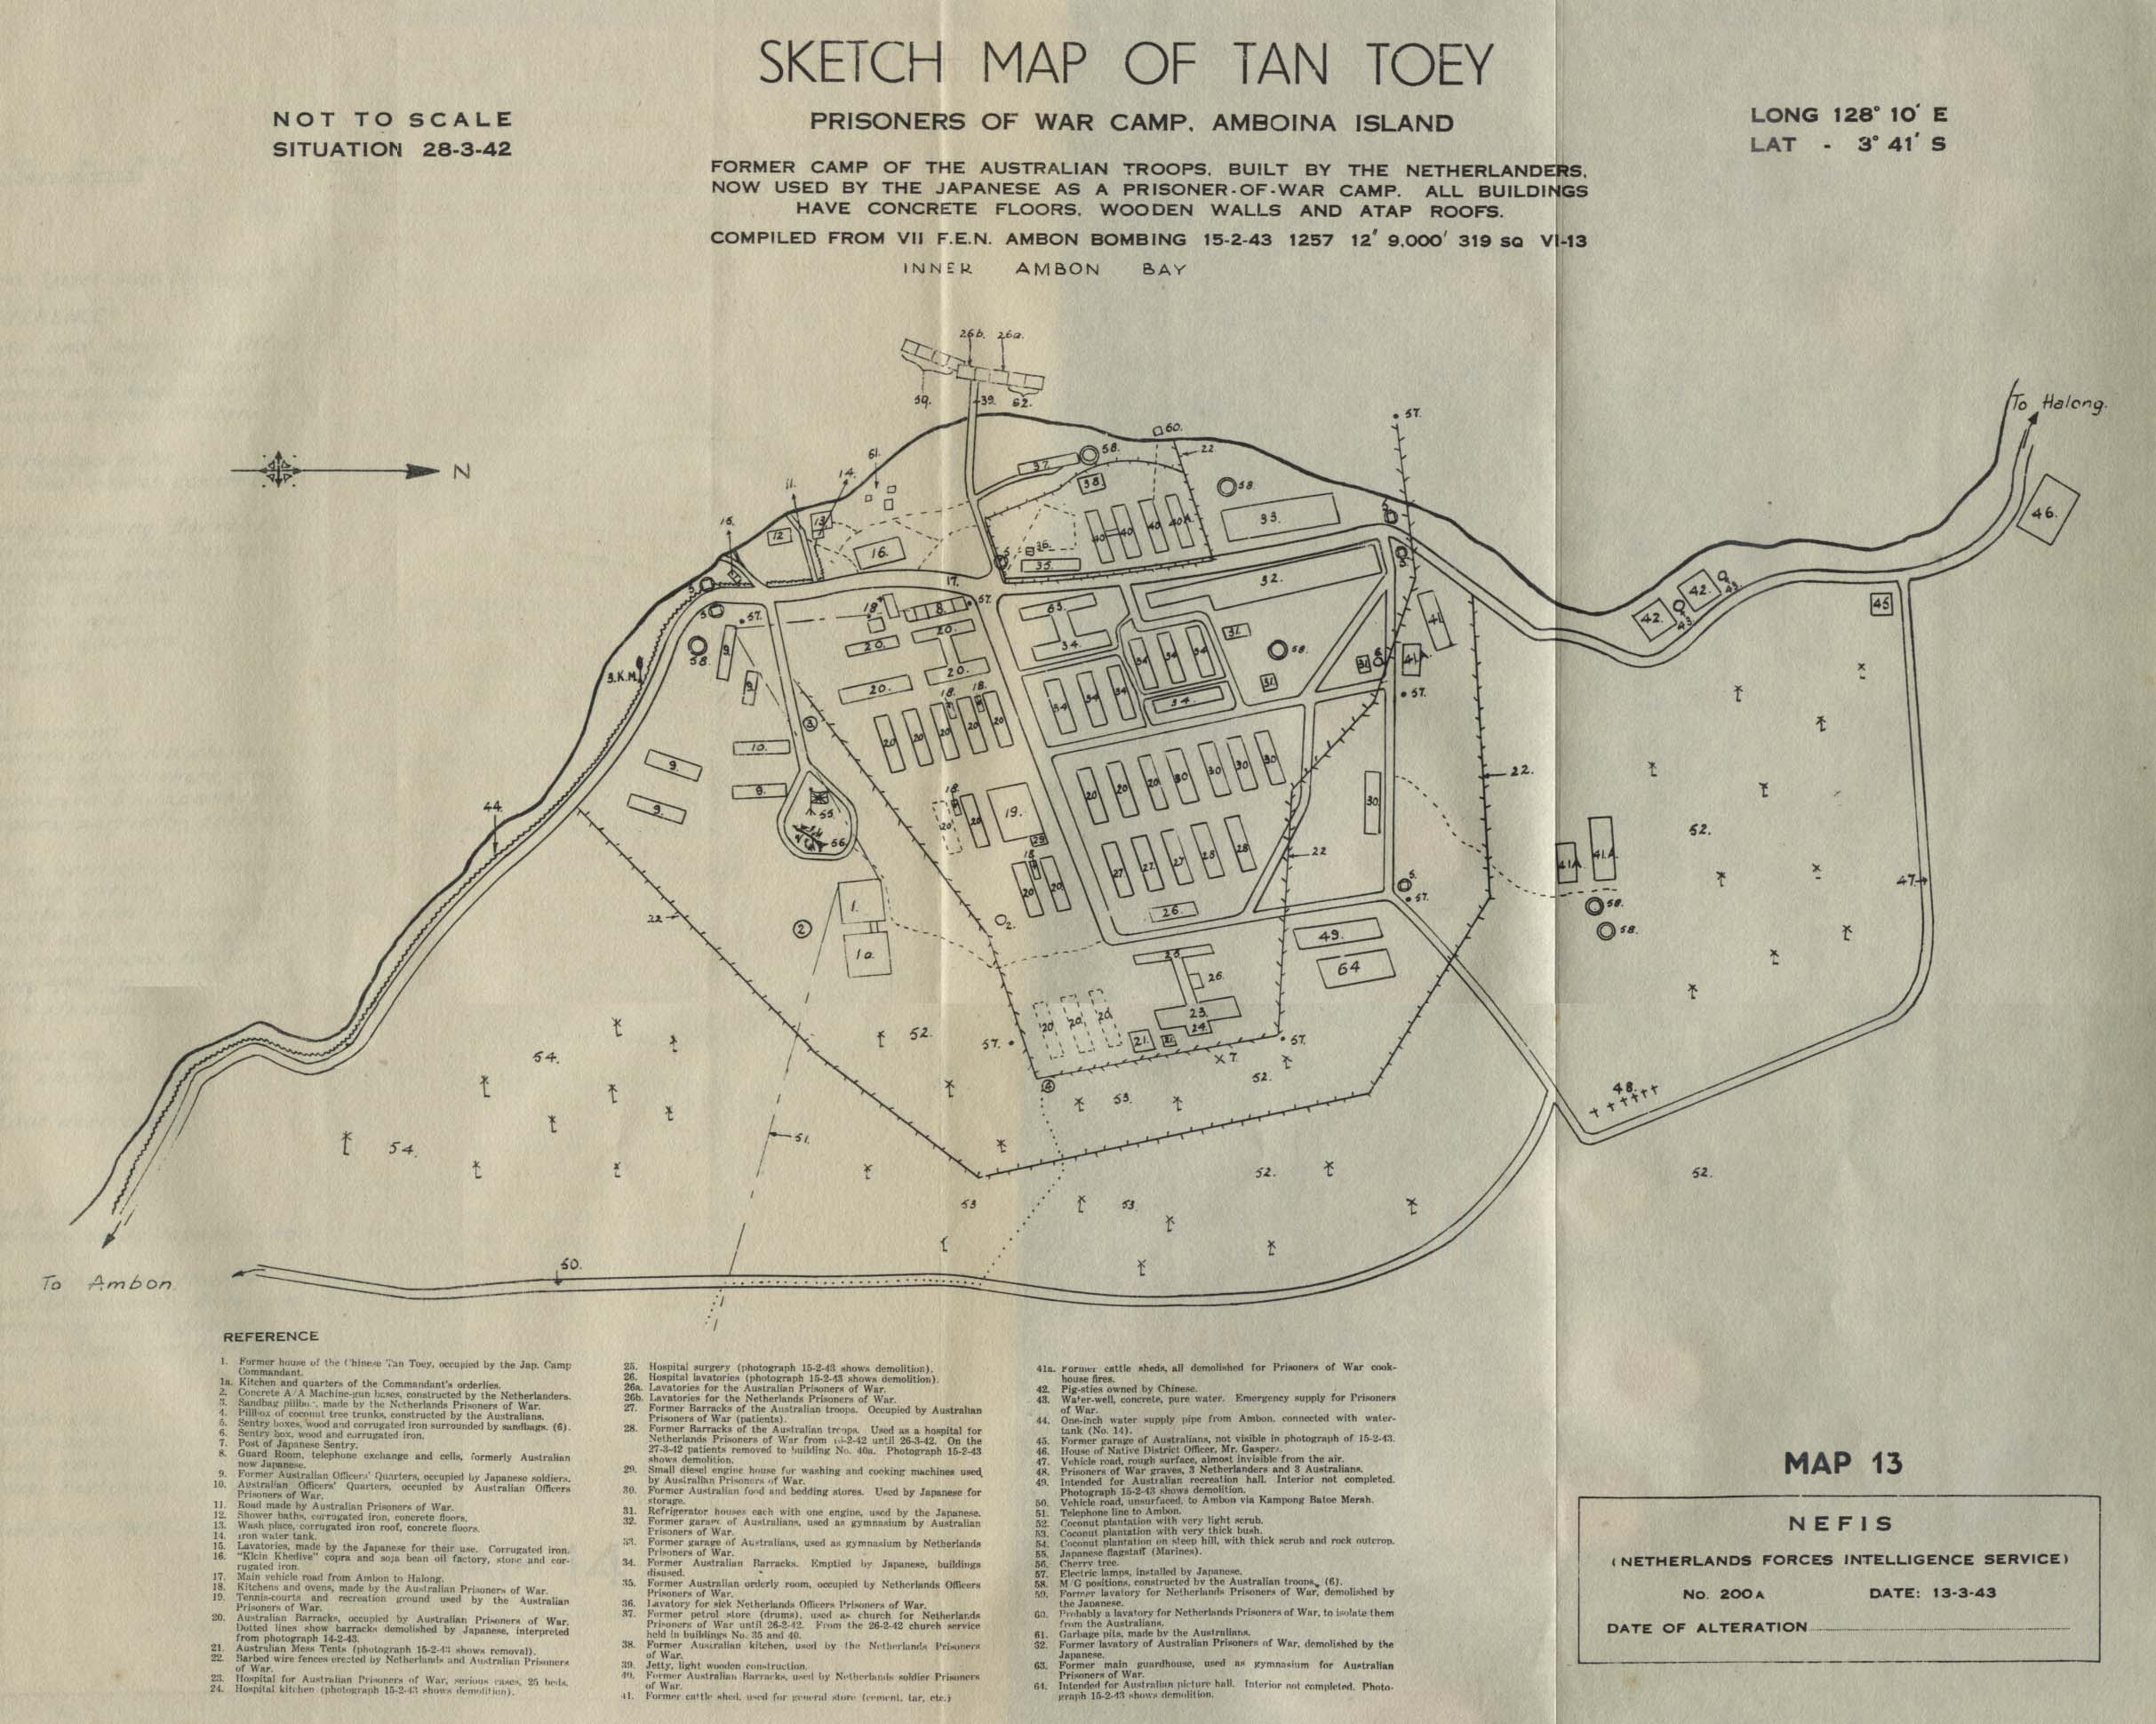 Map Of Tan Toey Prisoners Of War Camp Amboina From Allied Geographical Section Southwest Pacific Area Area Study Of Ambon Island Terrain Study No